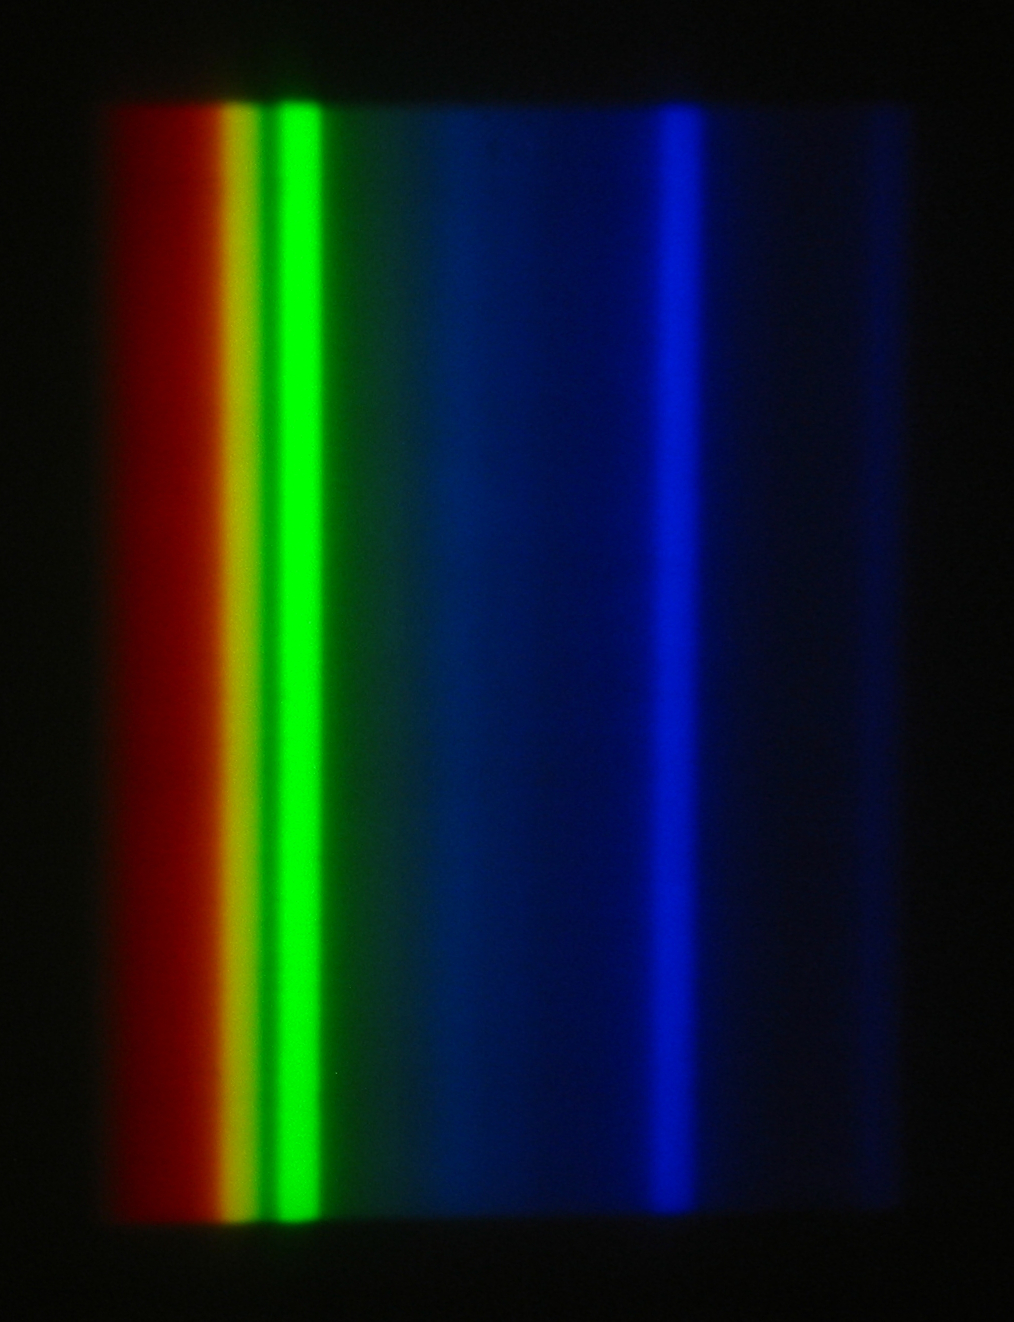 File:Mercury-vapor lamp spectrum PNr°0026.jpg - Wikimedia Commons for Mercury Spectrum  56bof